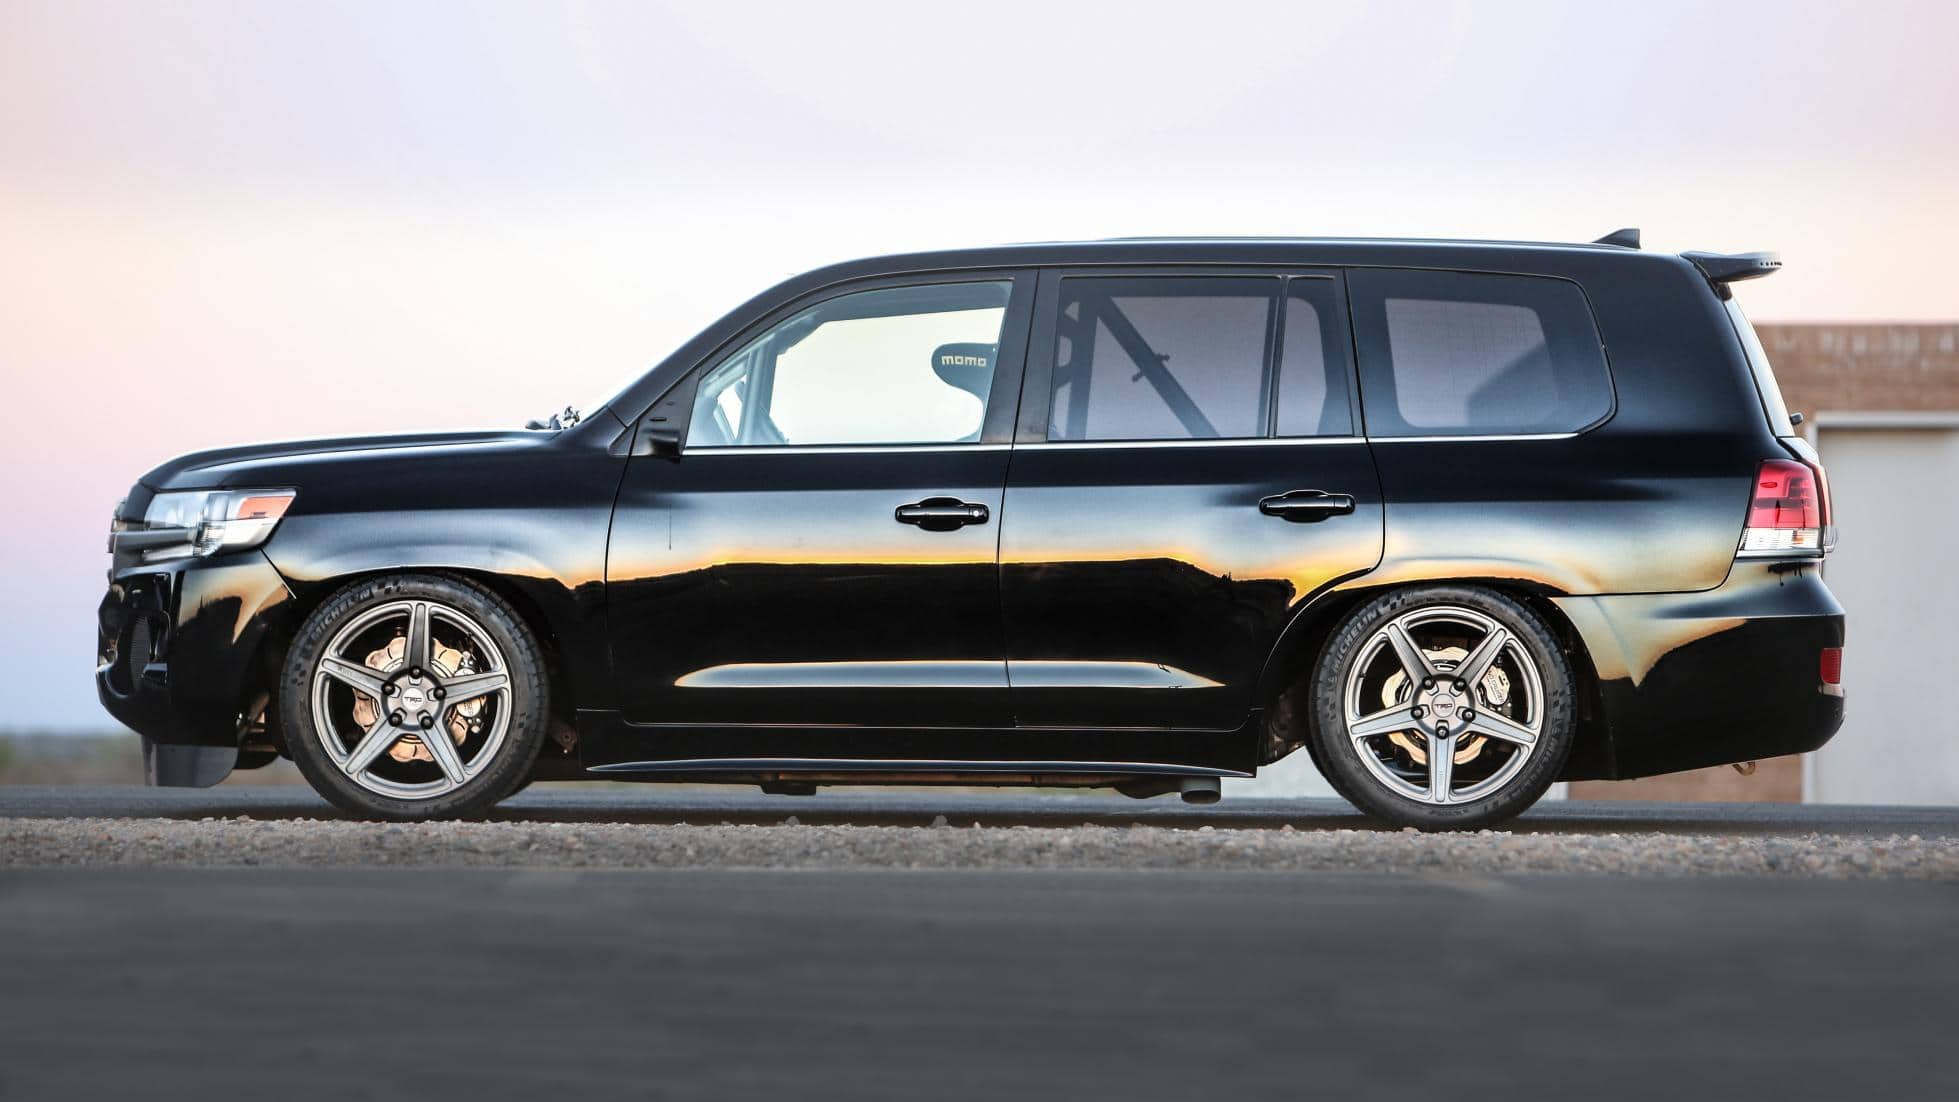 'Meet the World's Fastest SUV' which is a 2,000 bhp Land Cruiser